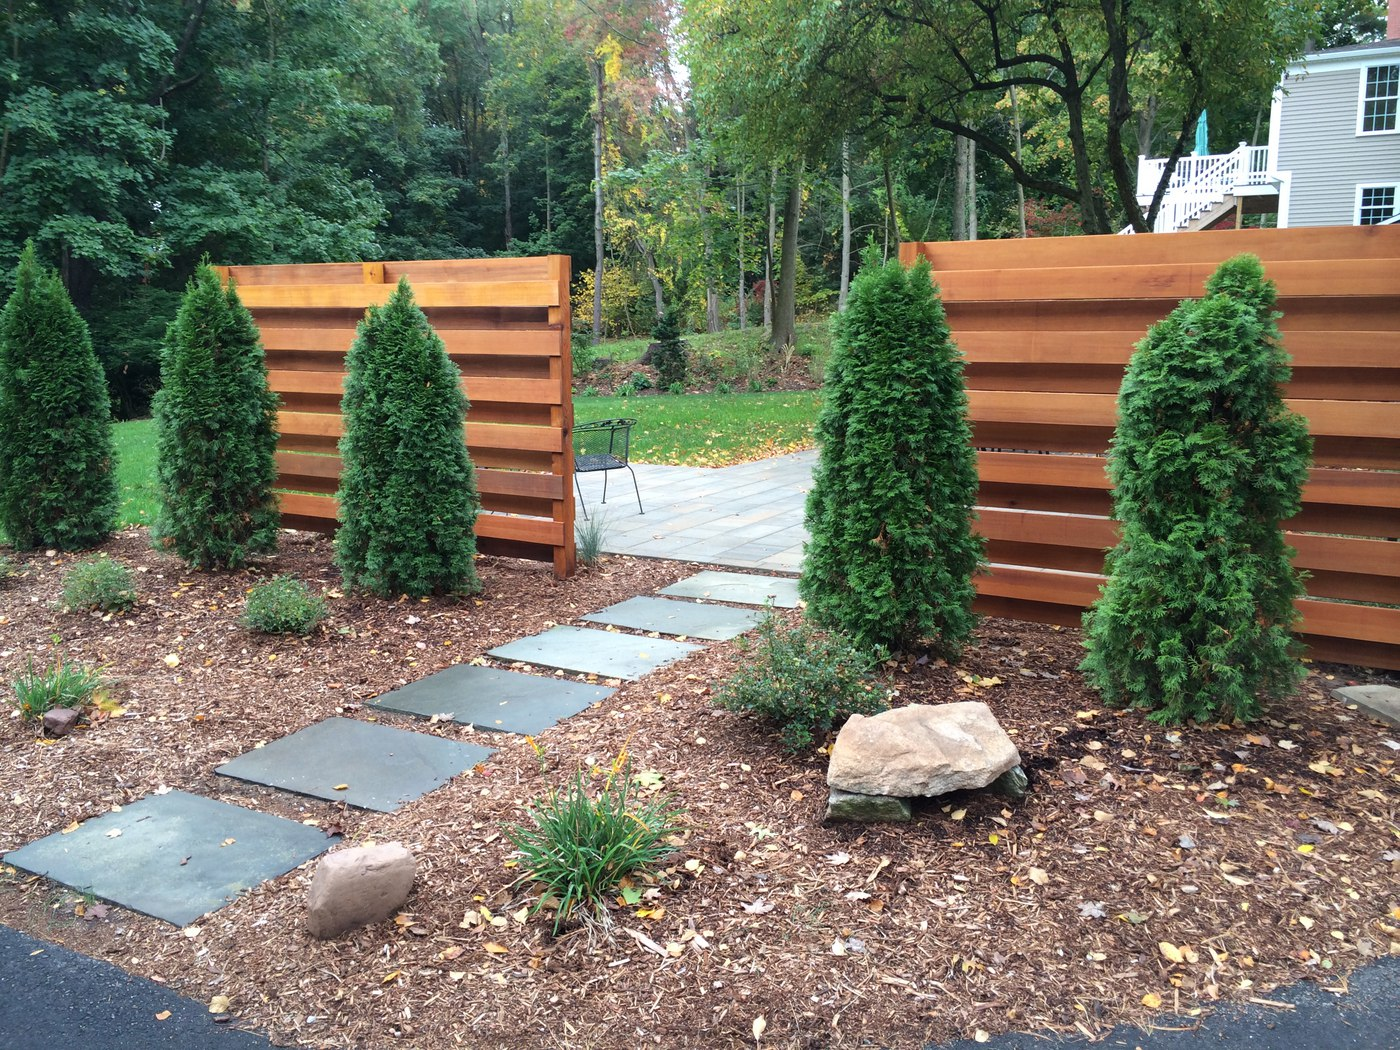 Landscaping Ideas For Cedar Trees : Stones through cedar panels and landscaping by bahler brothers in ct